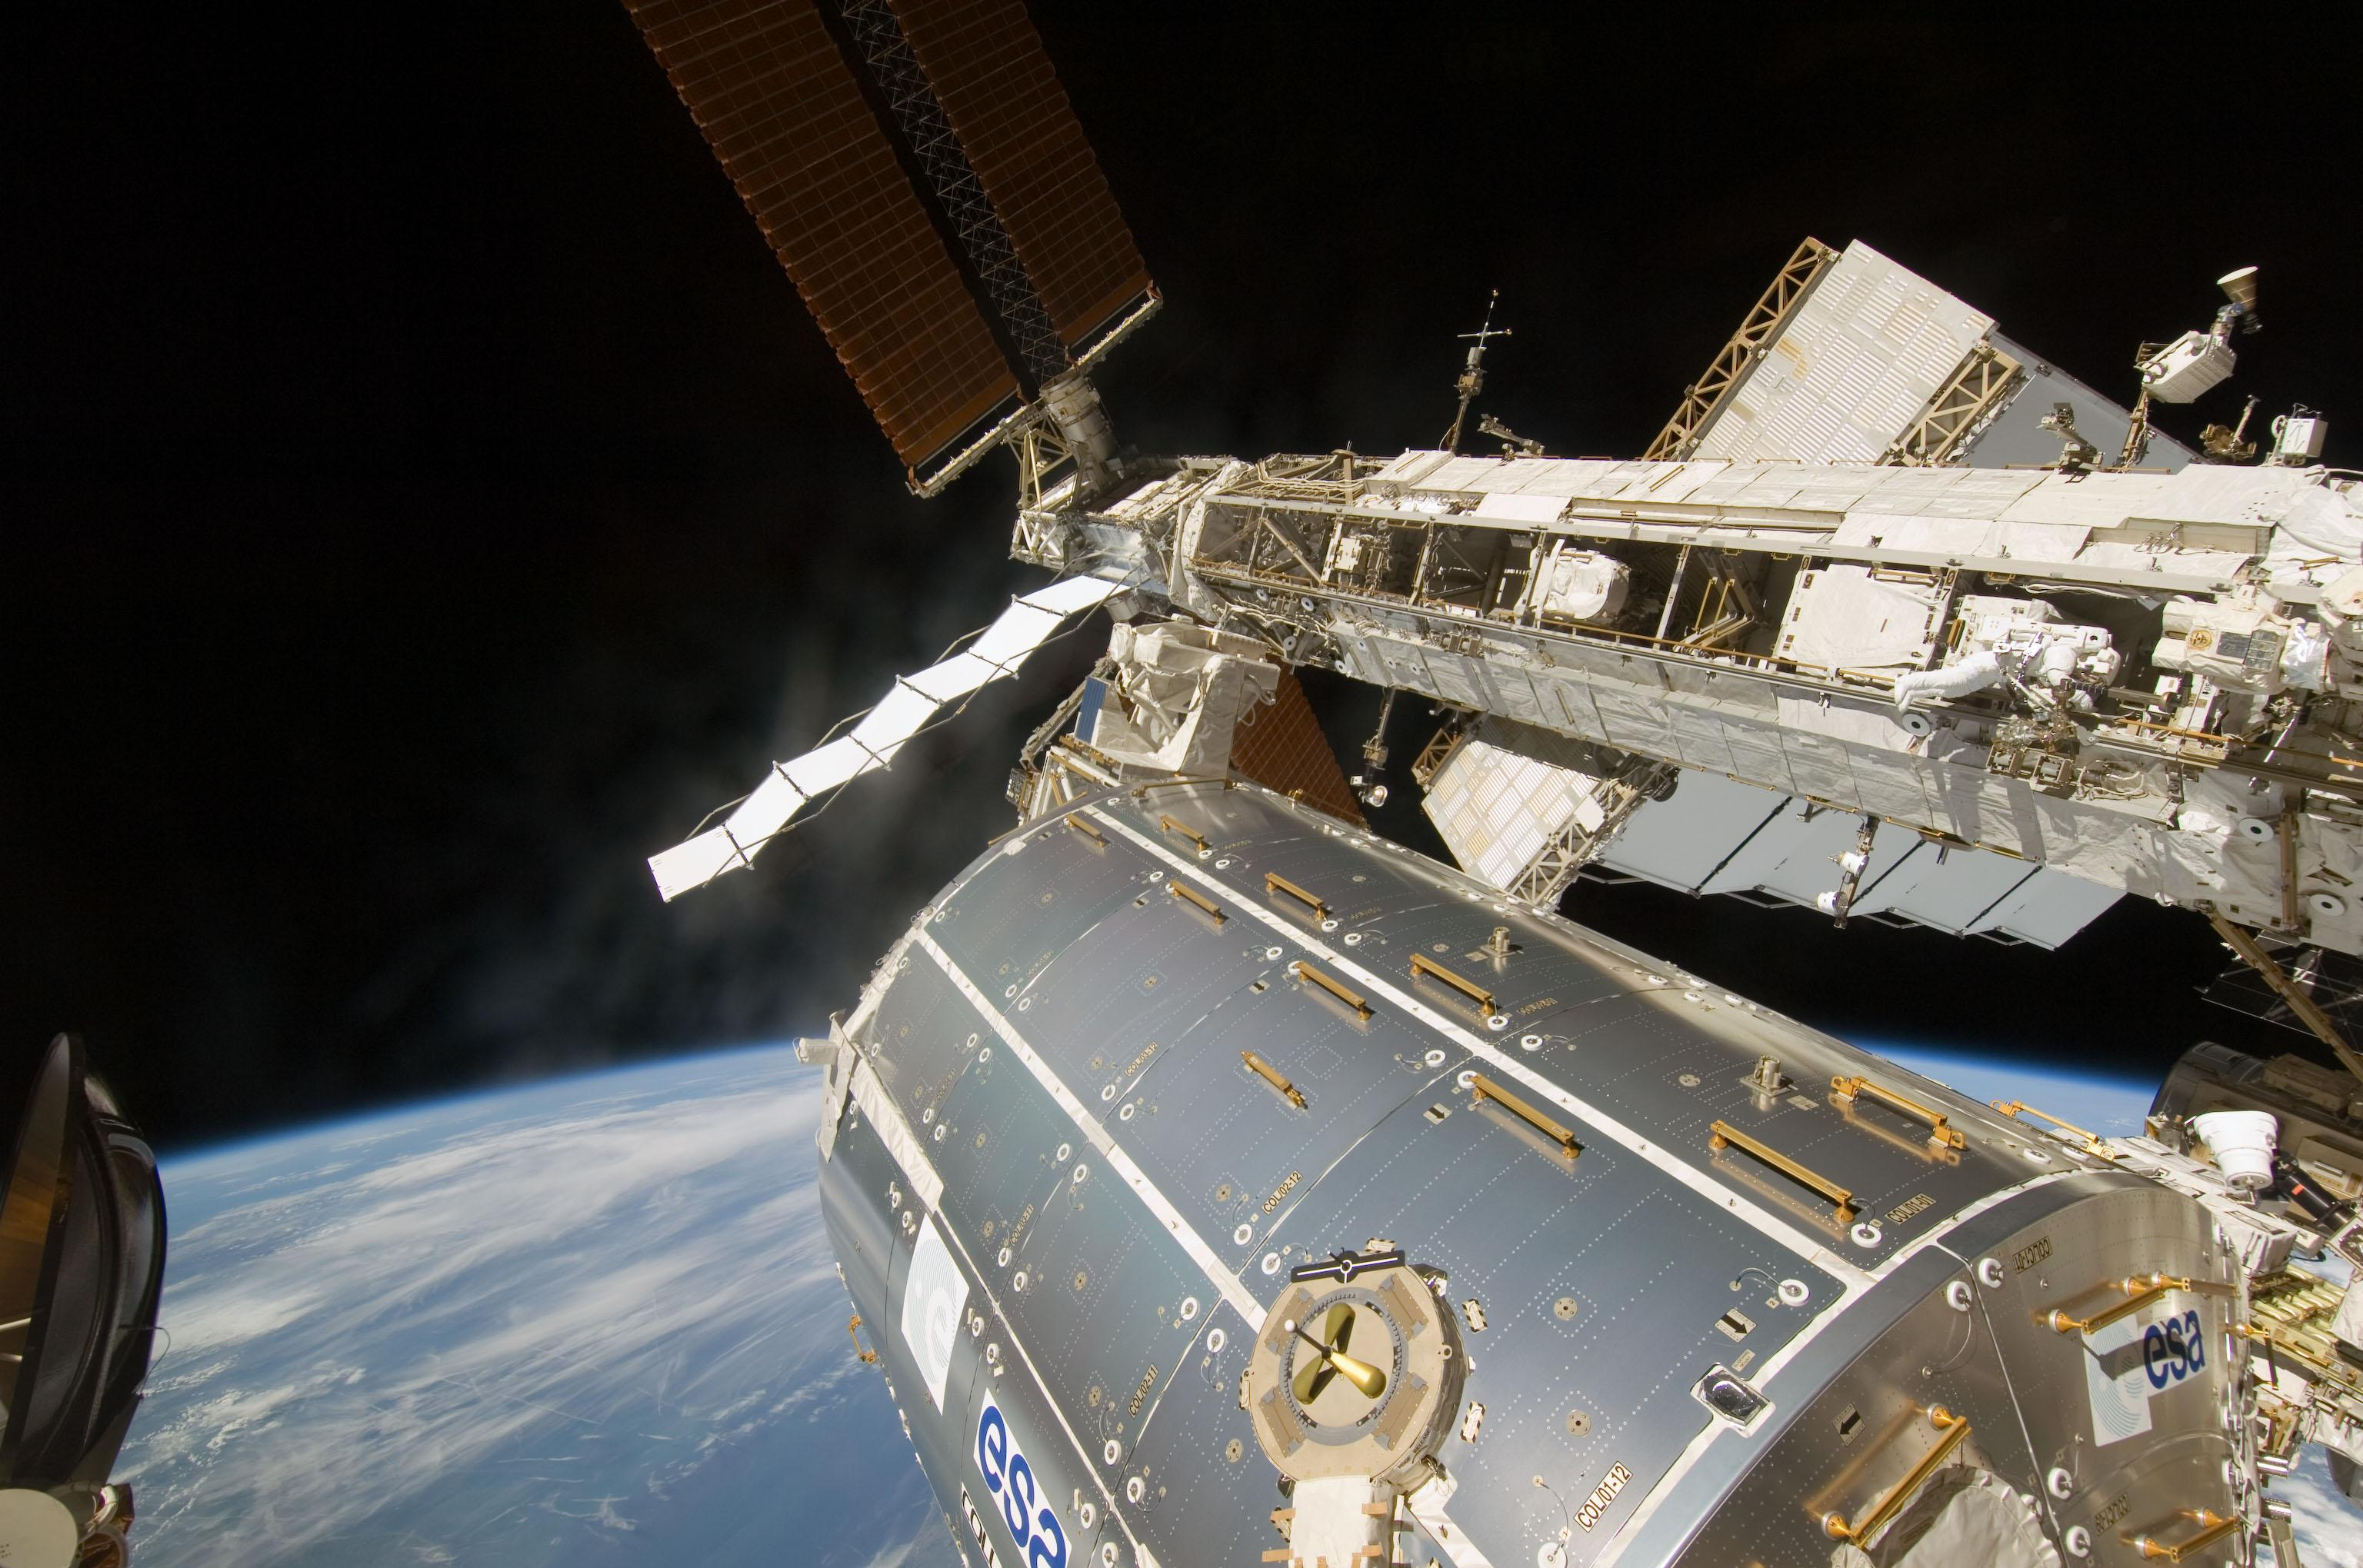 Third spacewalk completed nasa for When was the international space station built